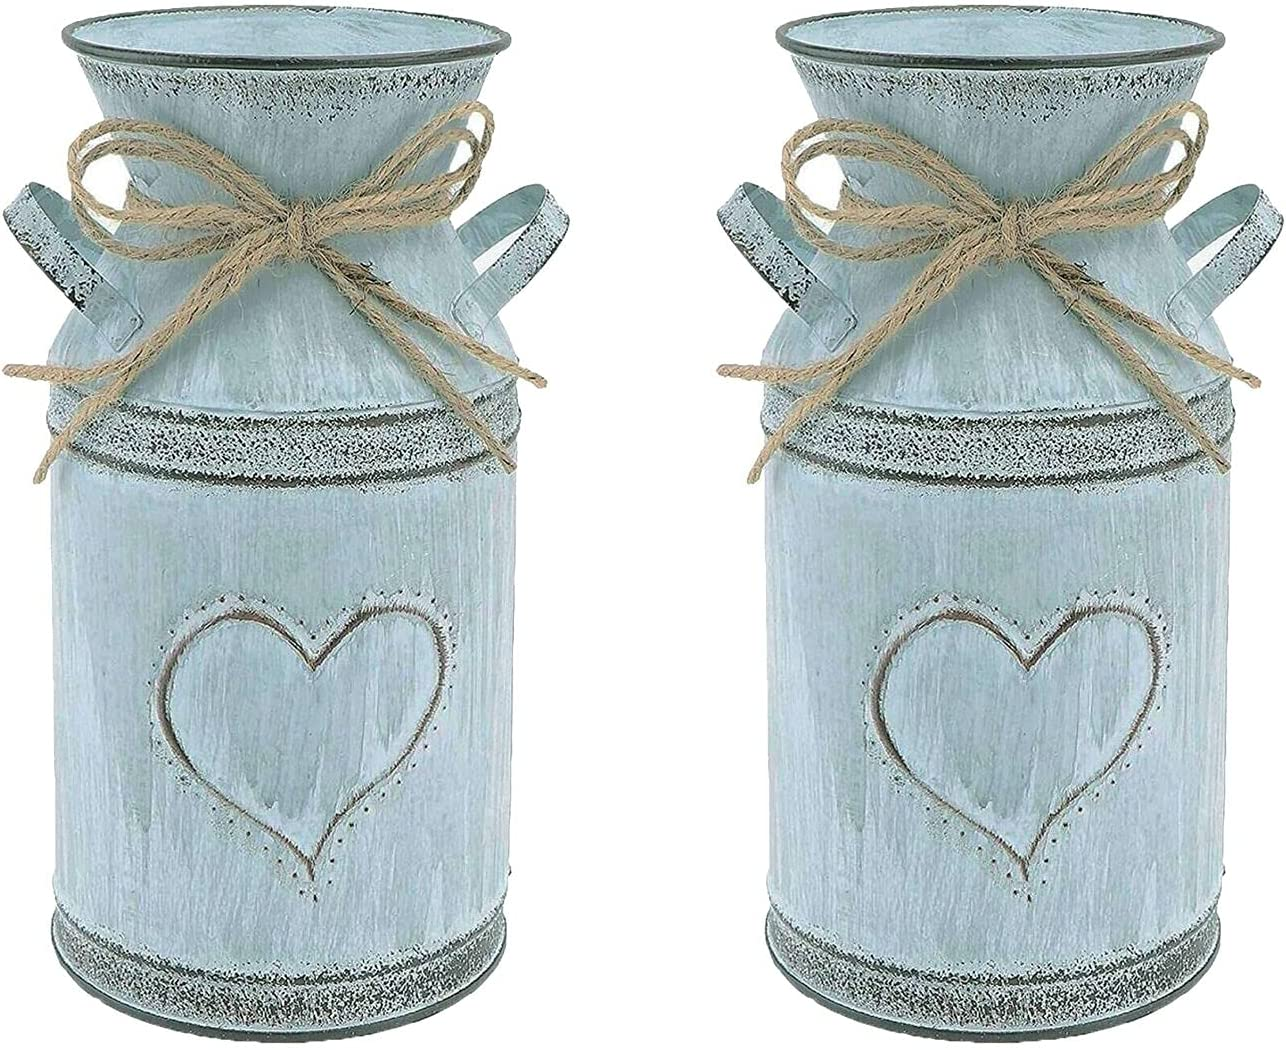 High Decorative Vase Rustic Vintage vase French Style Country Metal Shabby Chic Vase Galvanized Sheet Garden Plating Flower Pot Milk Can with Heart-Shaped Unique Design for Home Kitchen Decoration